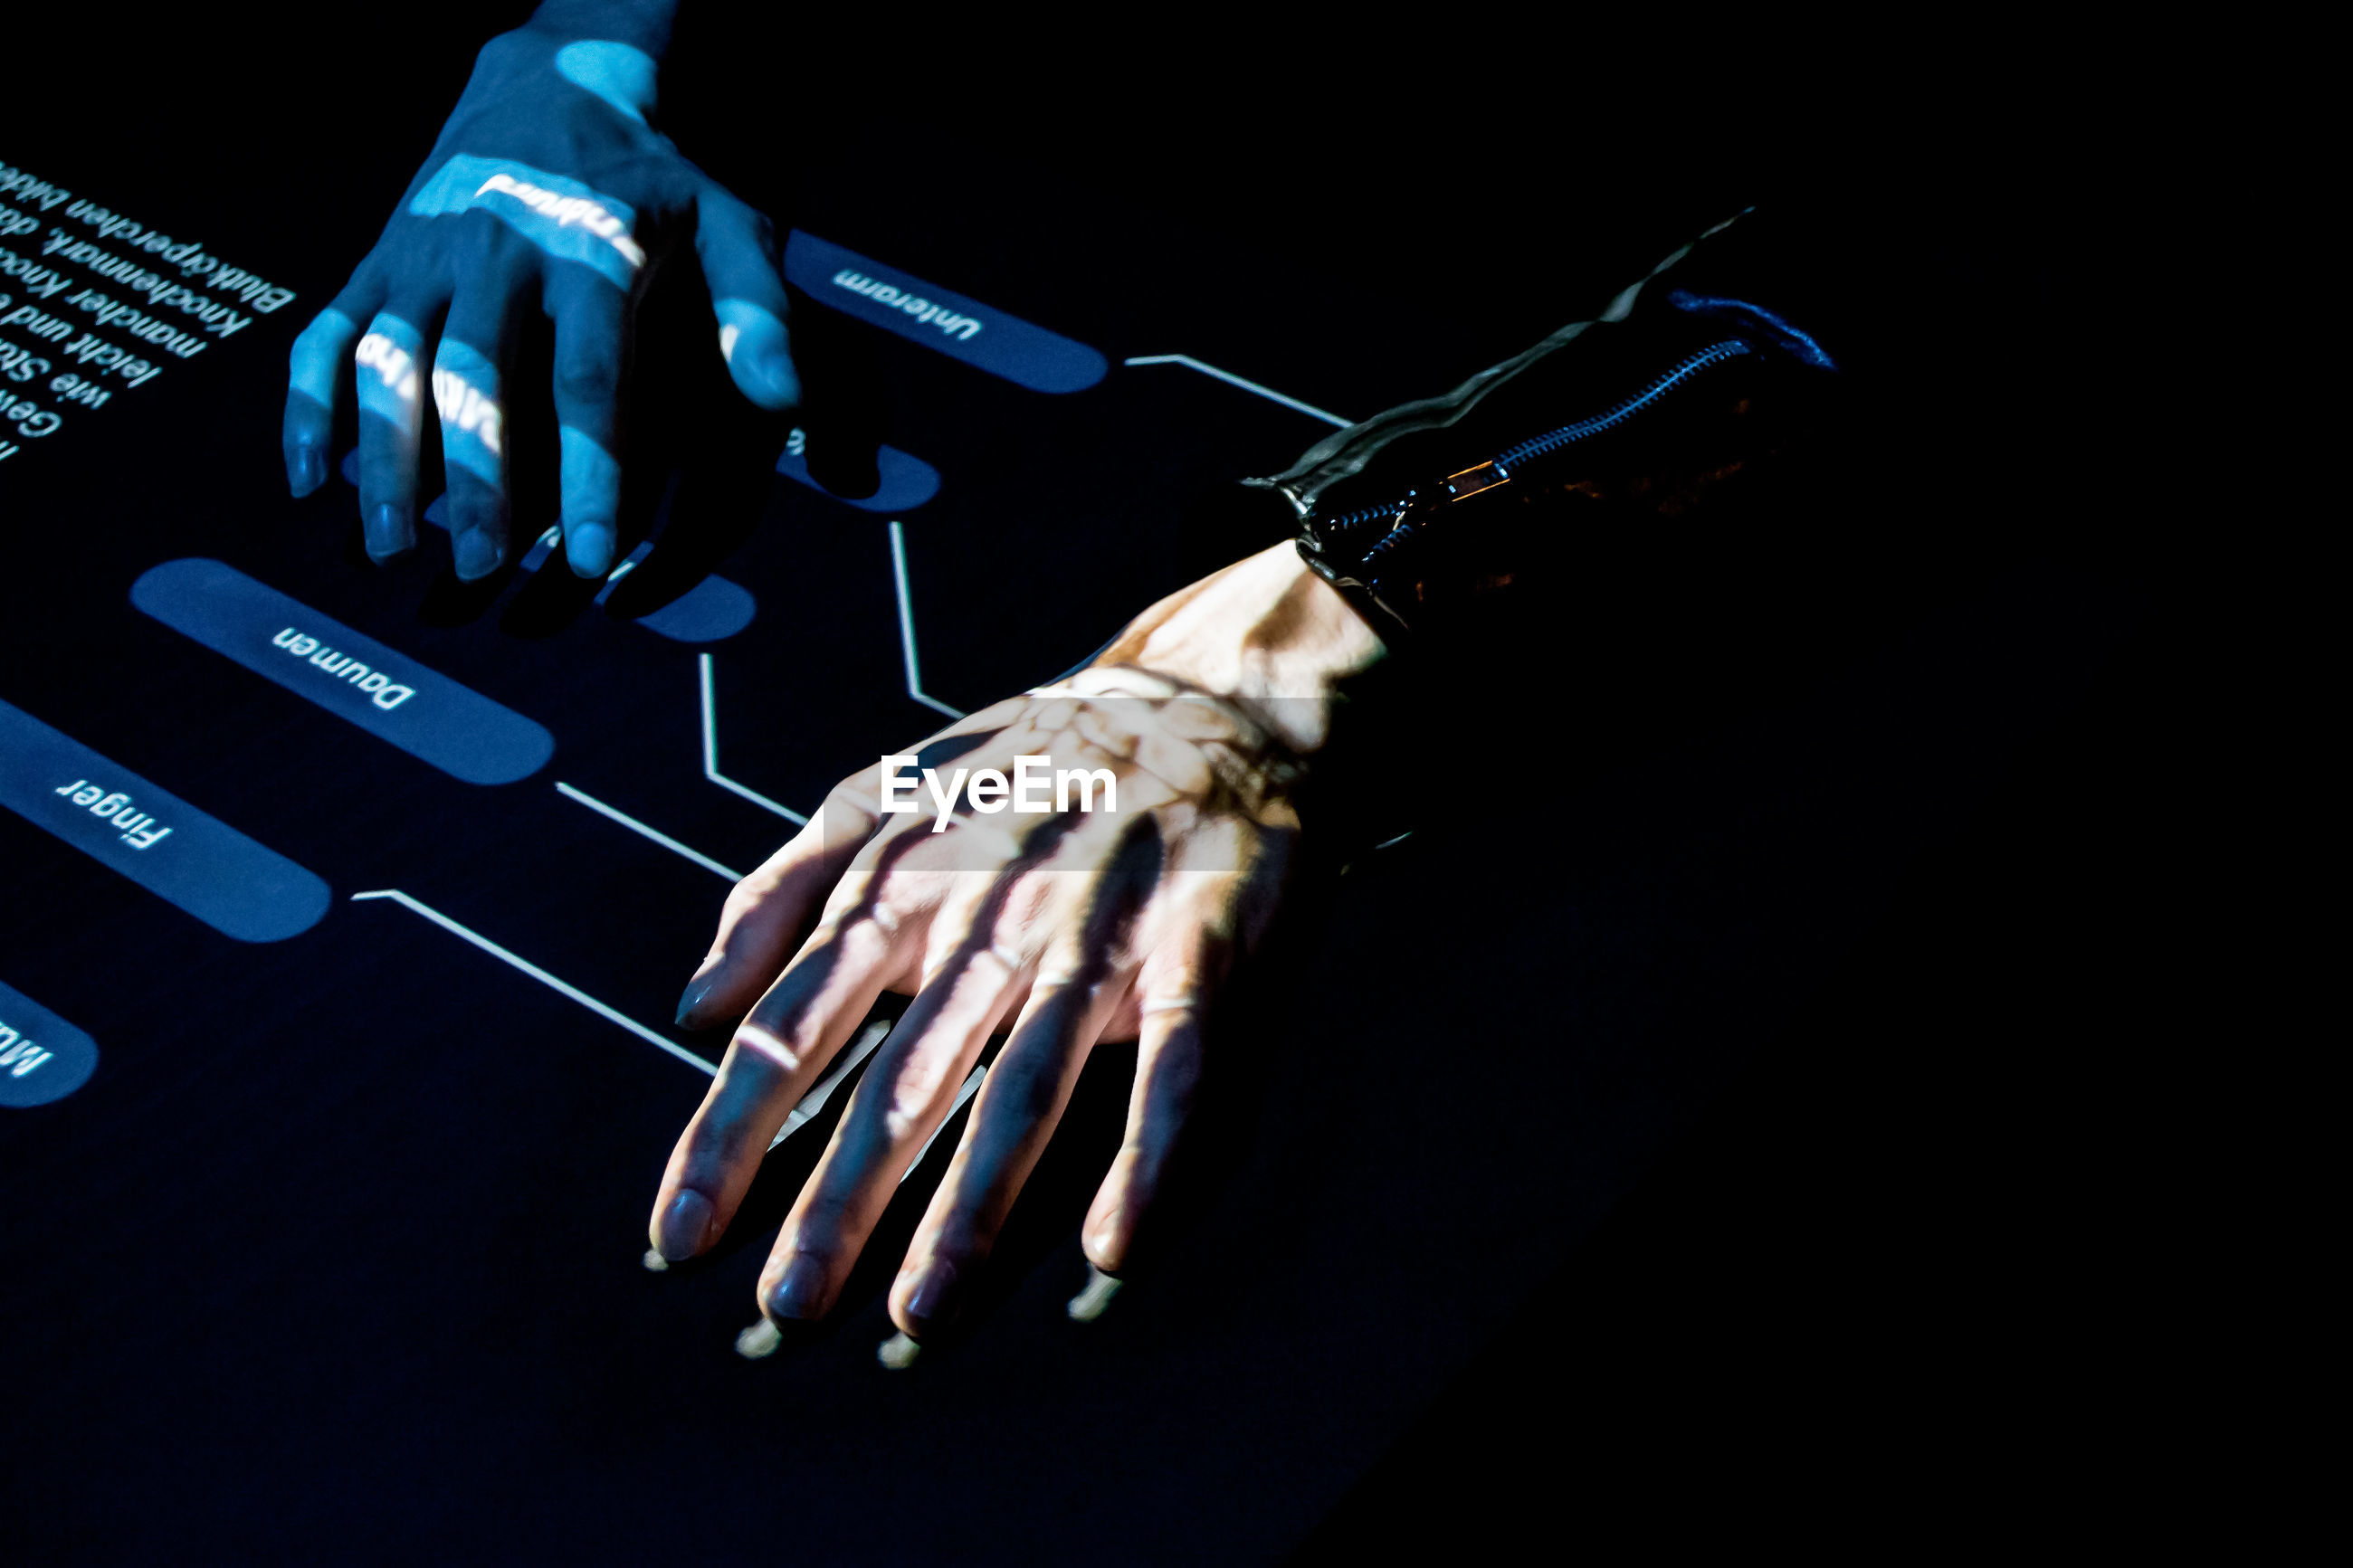 Cropped hands using interface against black background